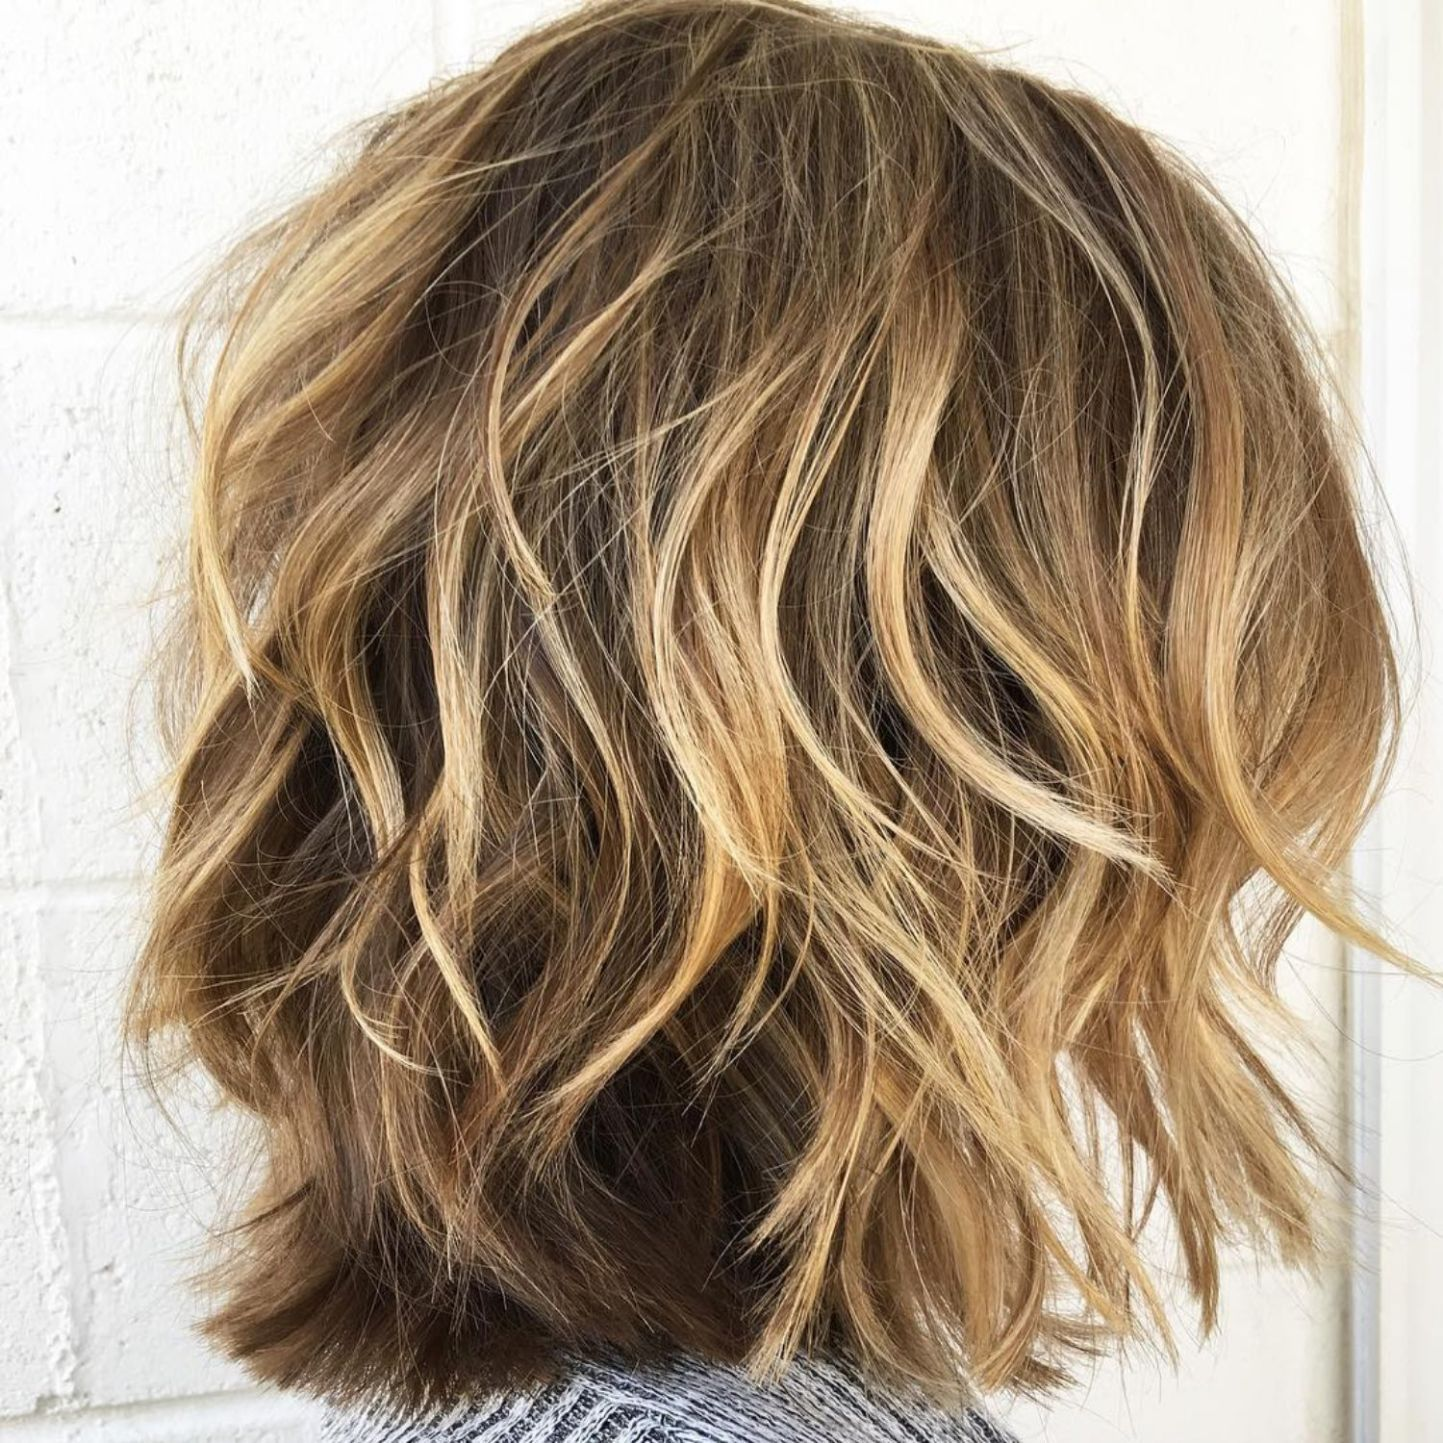 60 Most Beneficial Haircuts For Thick Hair Of Any Length In 2020 Thick Hair Styles Thick Wavy Haircuts Haircut For Thick Hair